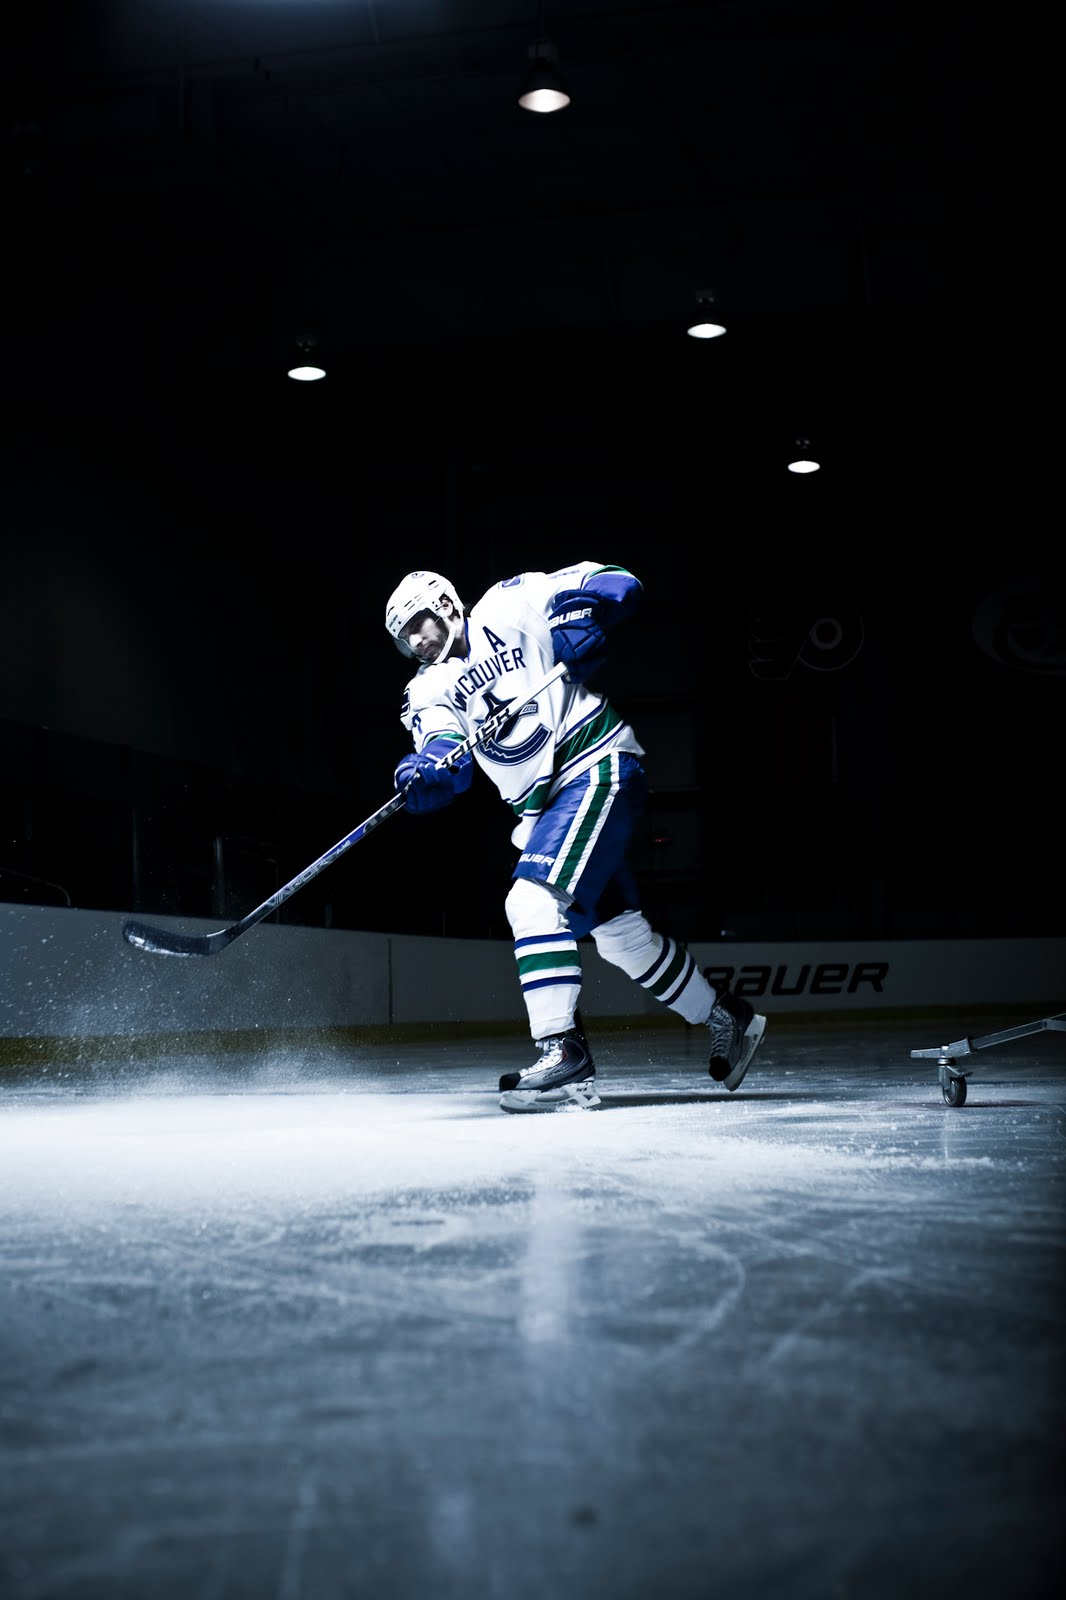 Bauer Hockey Iphone Wallpapers The Galleries Of Hd Wallpaper